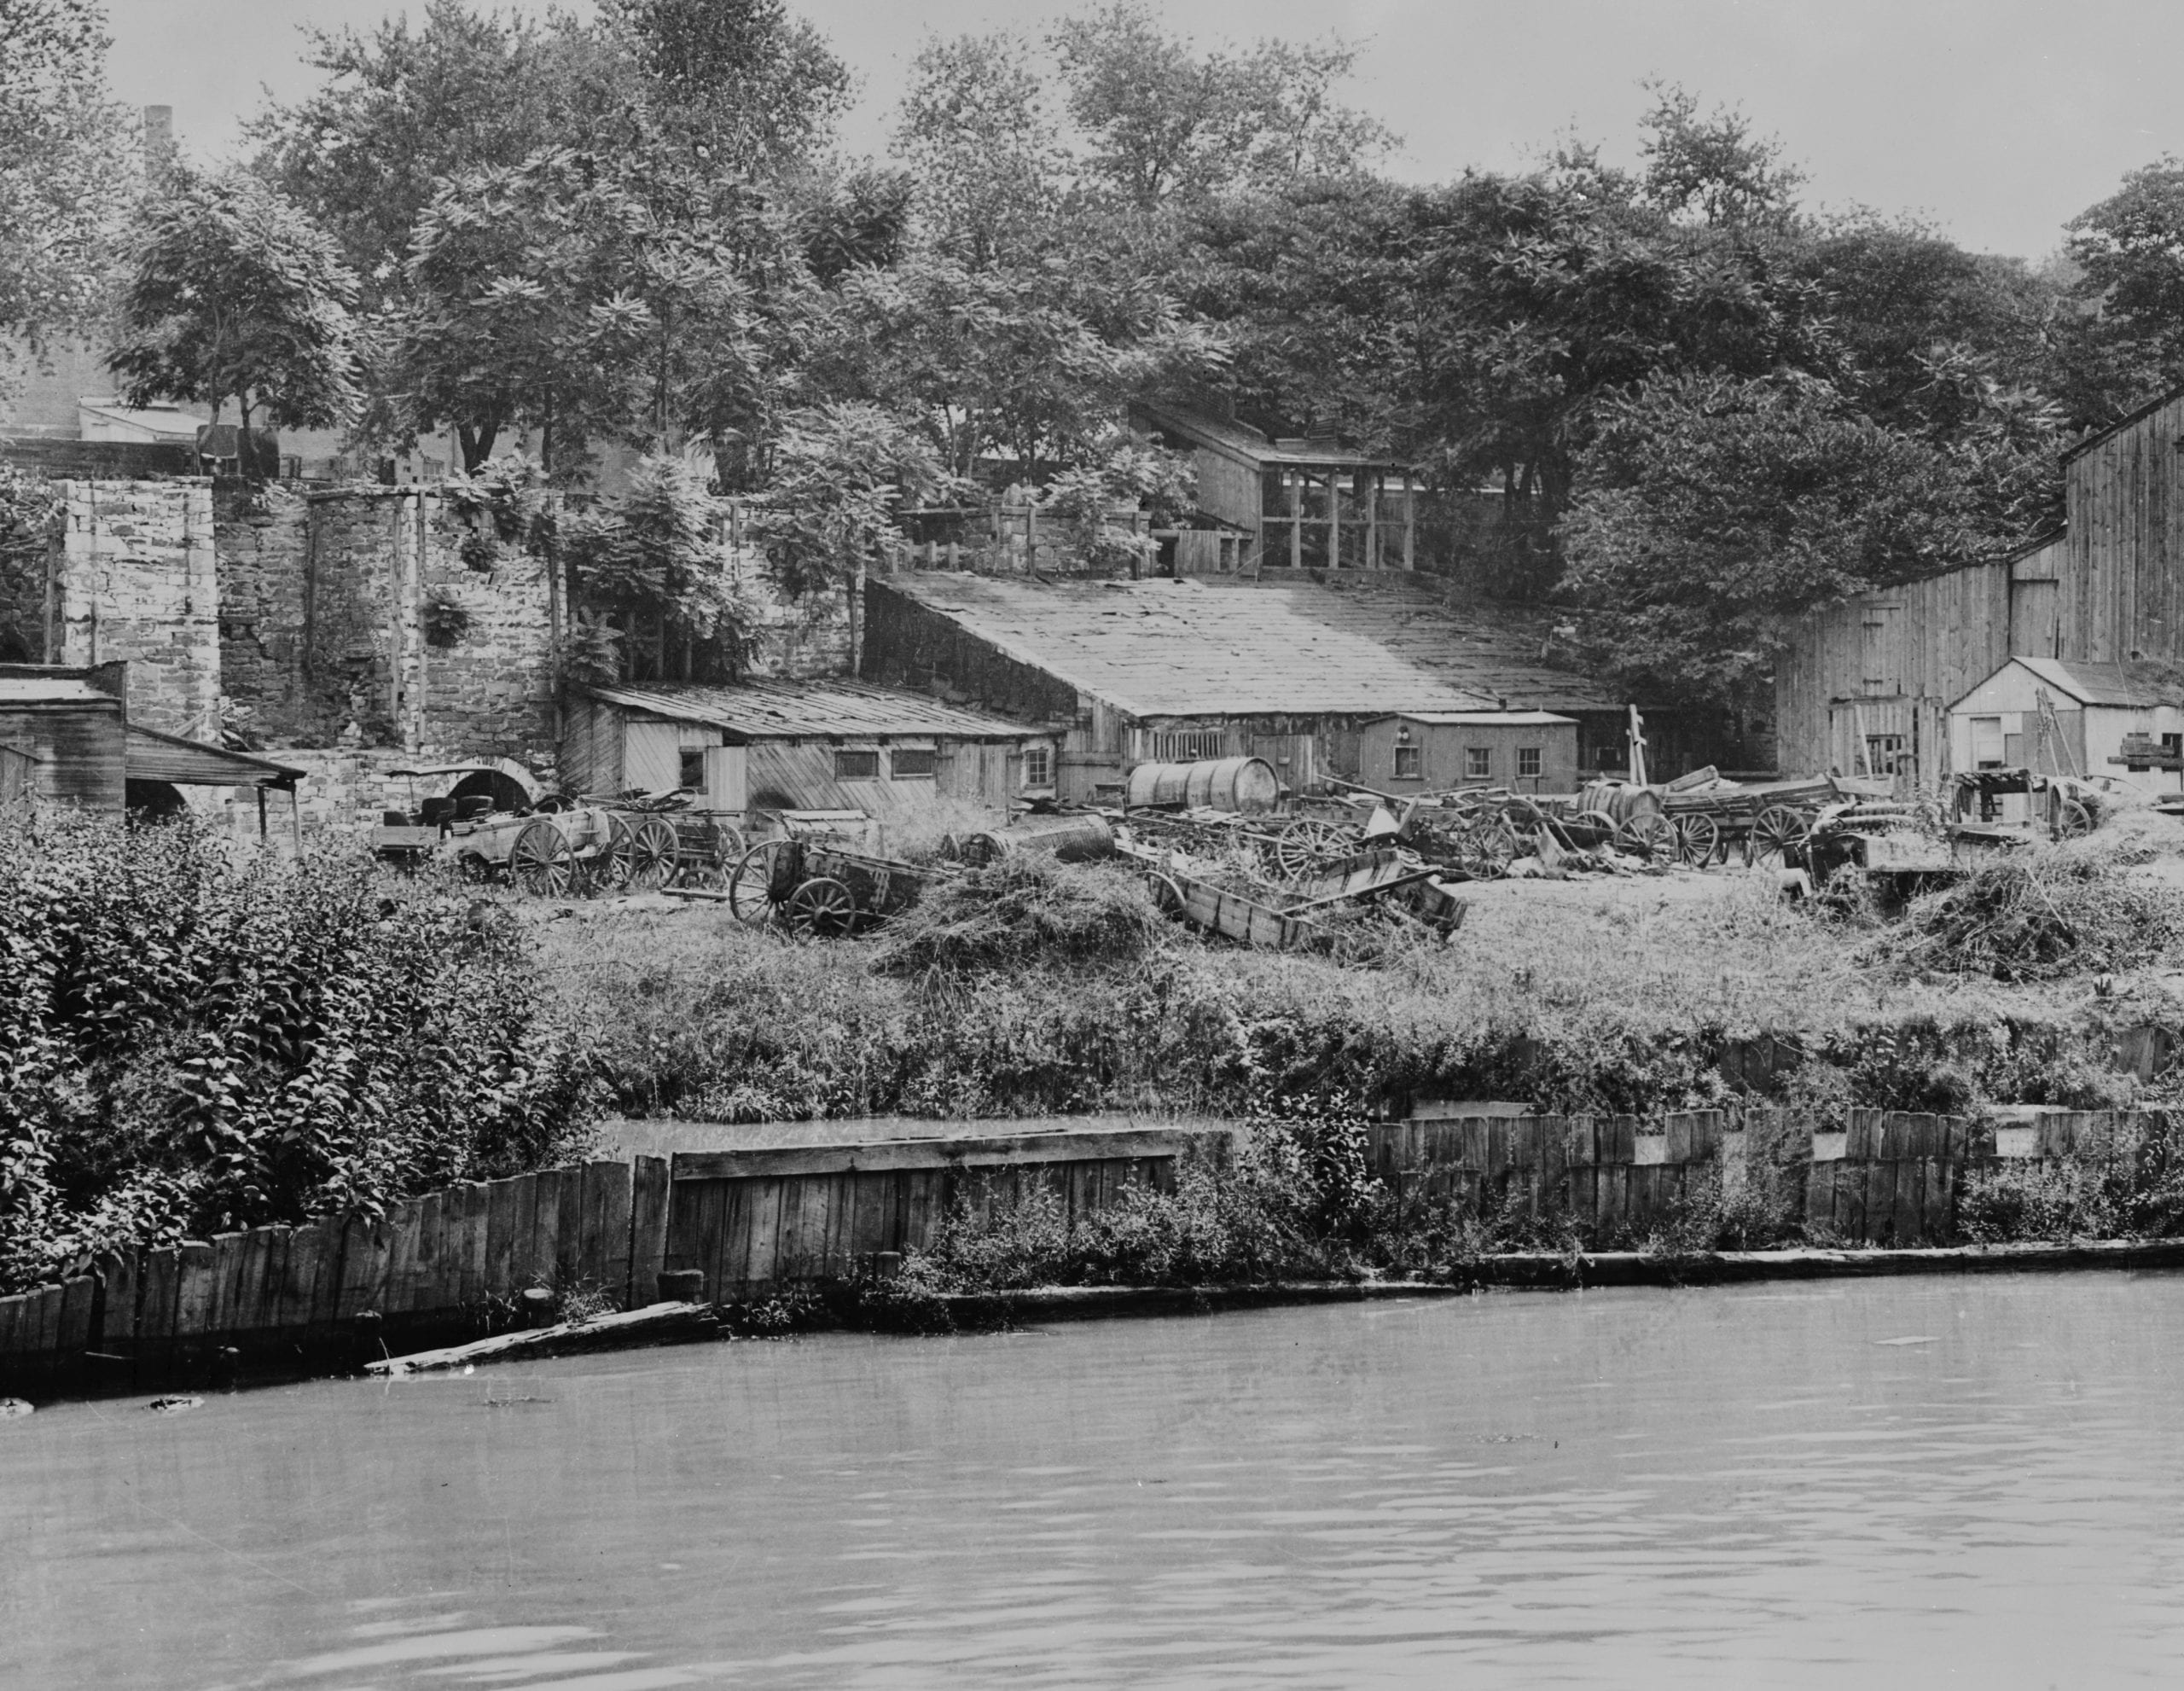 Historic American Buildings Survey Photographer Unknown, post 1907. EXTERIOR FROM WEST Copied from print in files of National Capital Region, National Park Service, Washington, D. C. - Godey Lime Kilns (Ruins), Junction of Rock Creek & Potomac Parkway, Washington, District of Columbia, DC